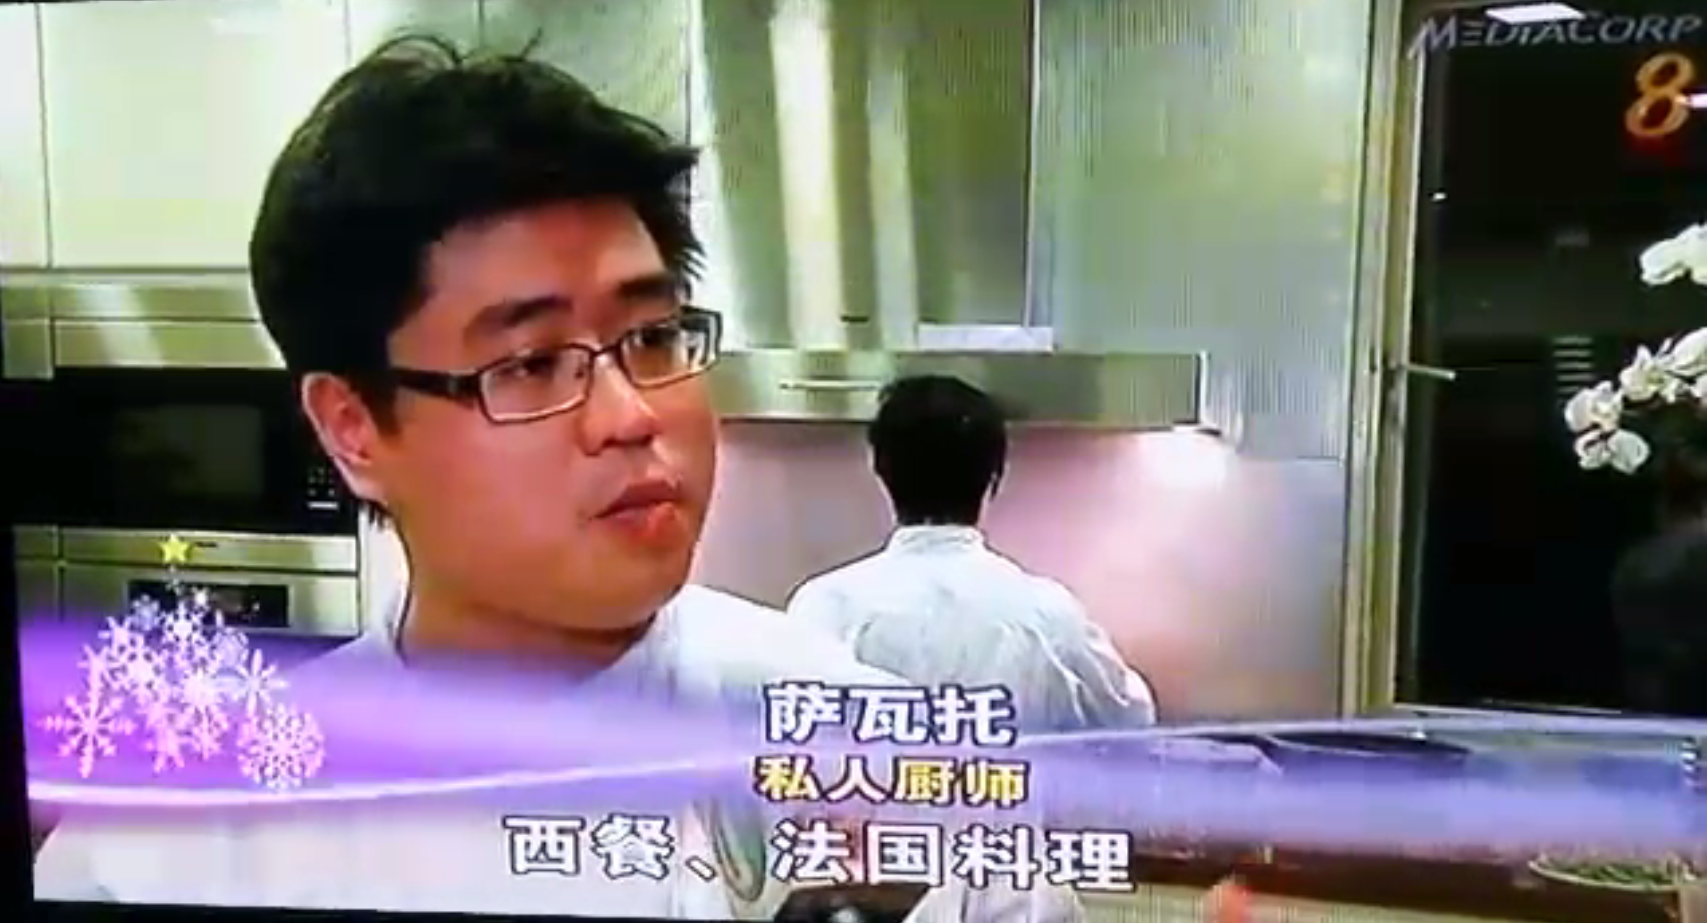 Personal Chef Singapore Channel 8 New